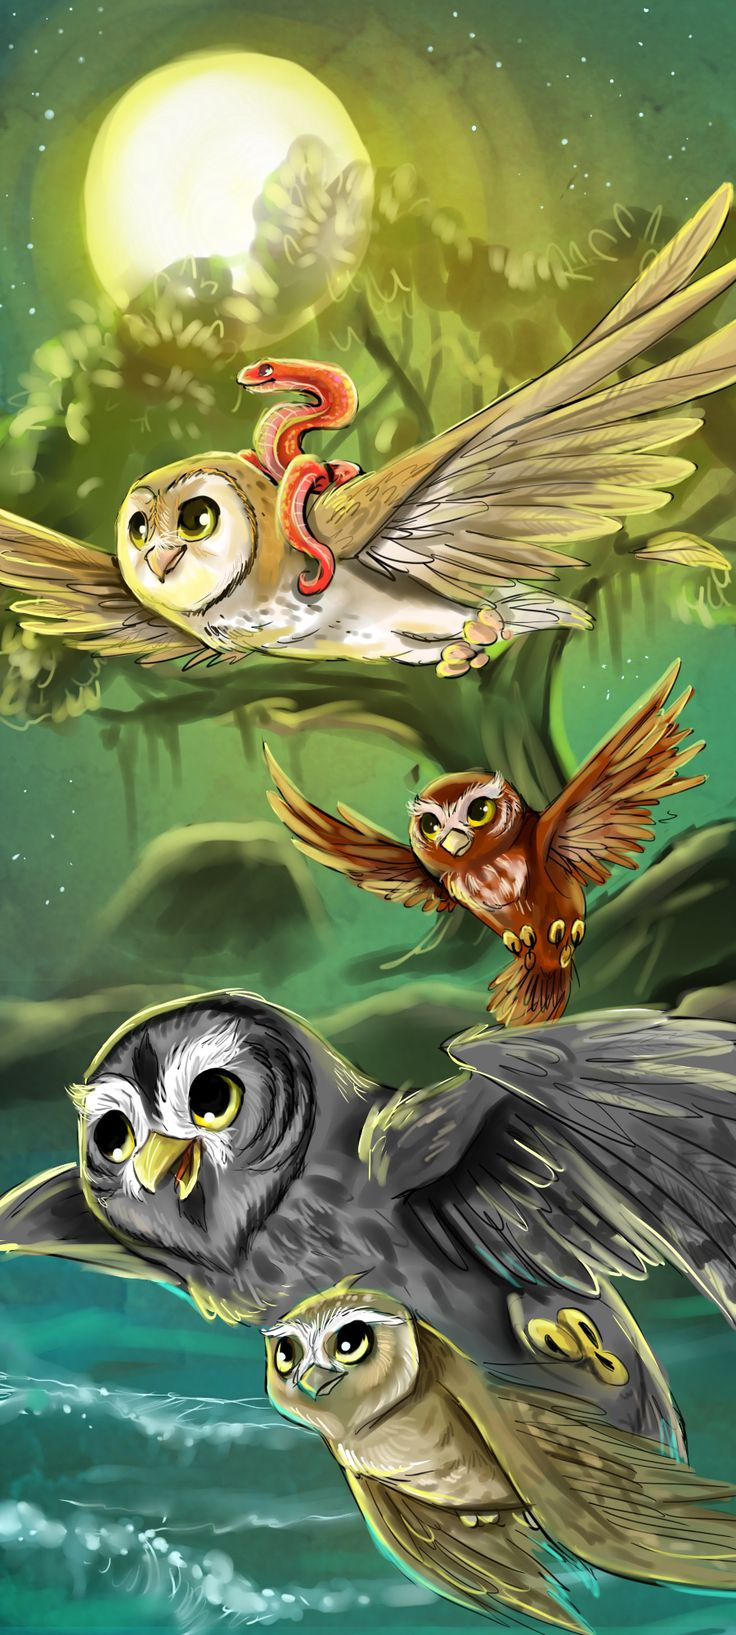 Legend Of The Guardians: The Owls of Ga'Hoole art. :)